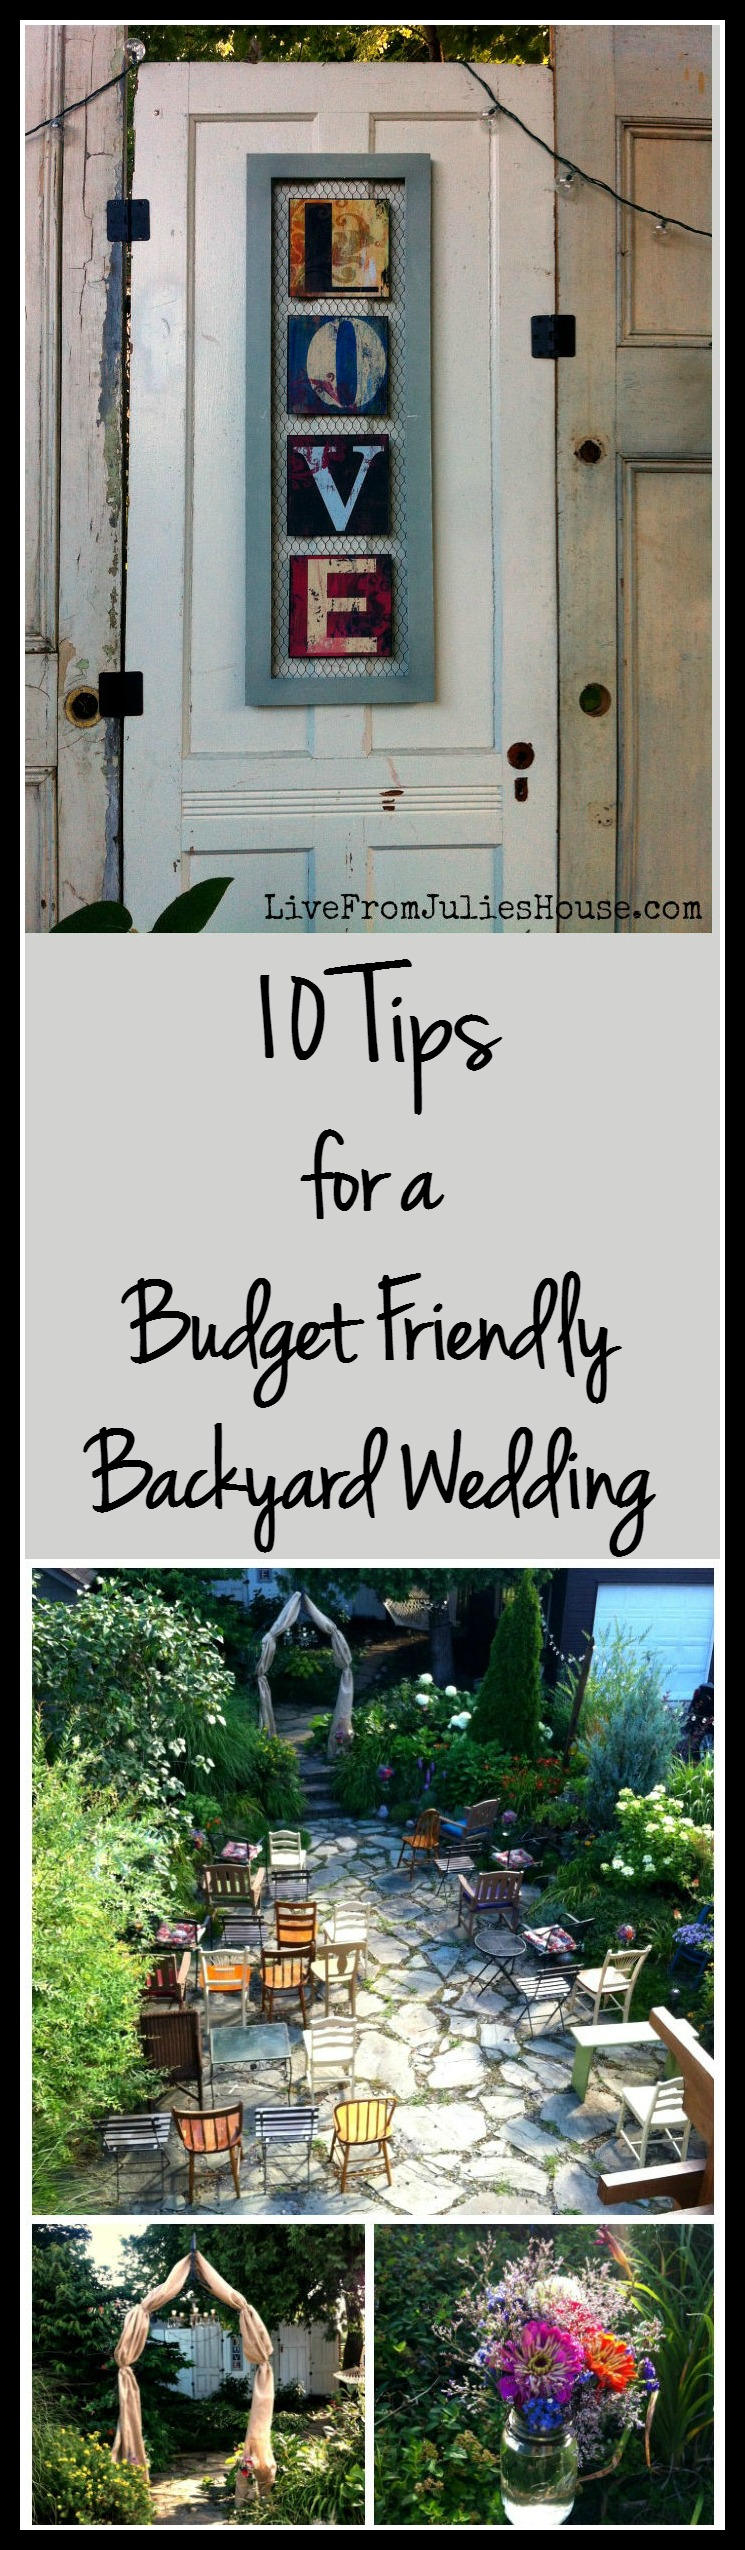 Is it possible to host a cute, budget friendly wedding in a tiny backyard on an even tinier budget? You betcha! I planned a wedding in 3 weeks with a $350 budget., see how I did it with my 10 Tips for a Budget Friendly Backyard Wedding.